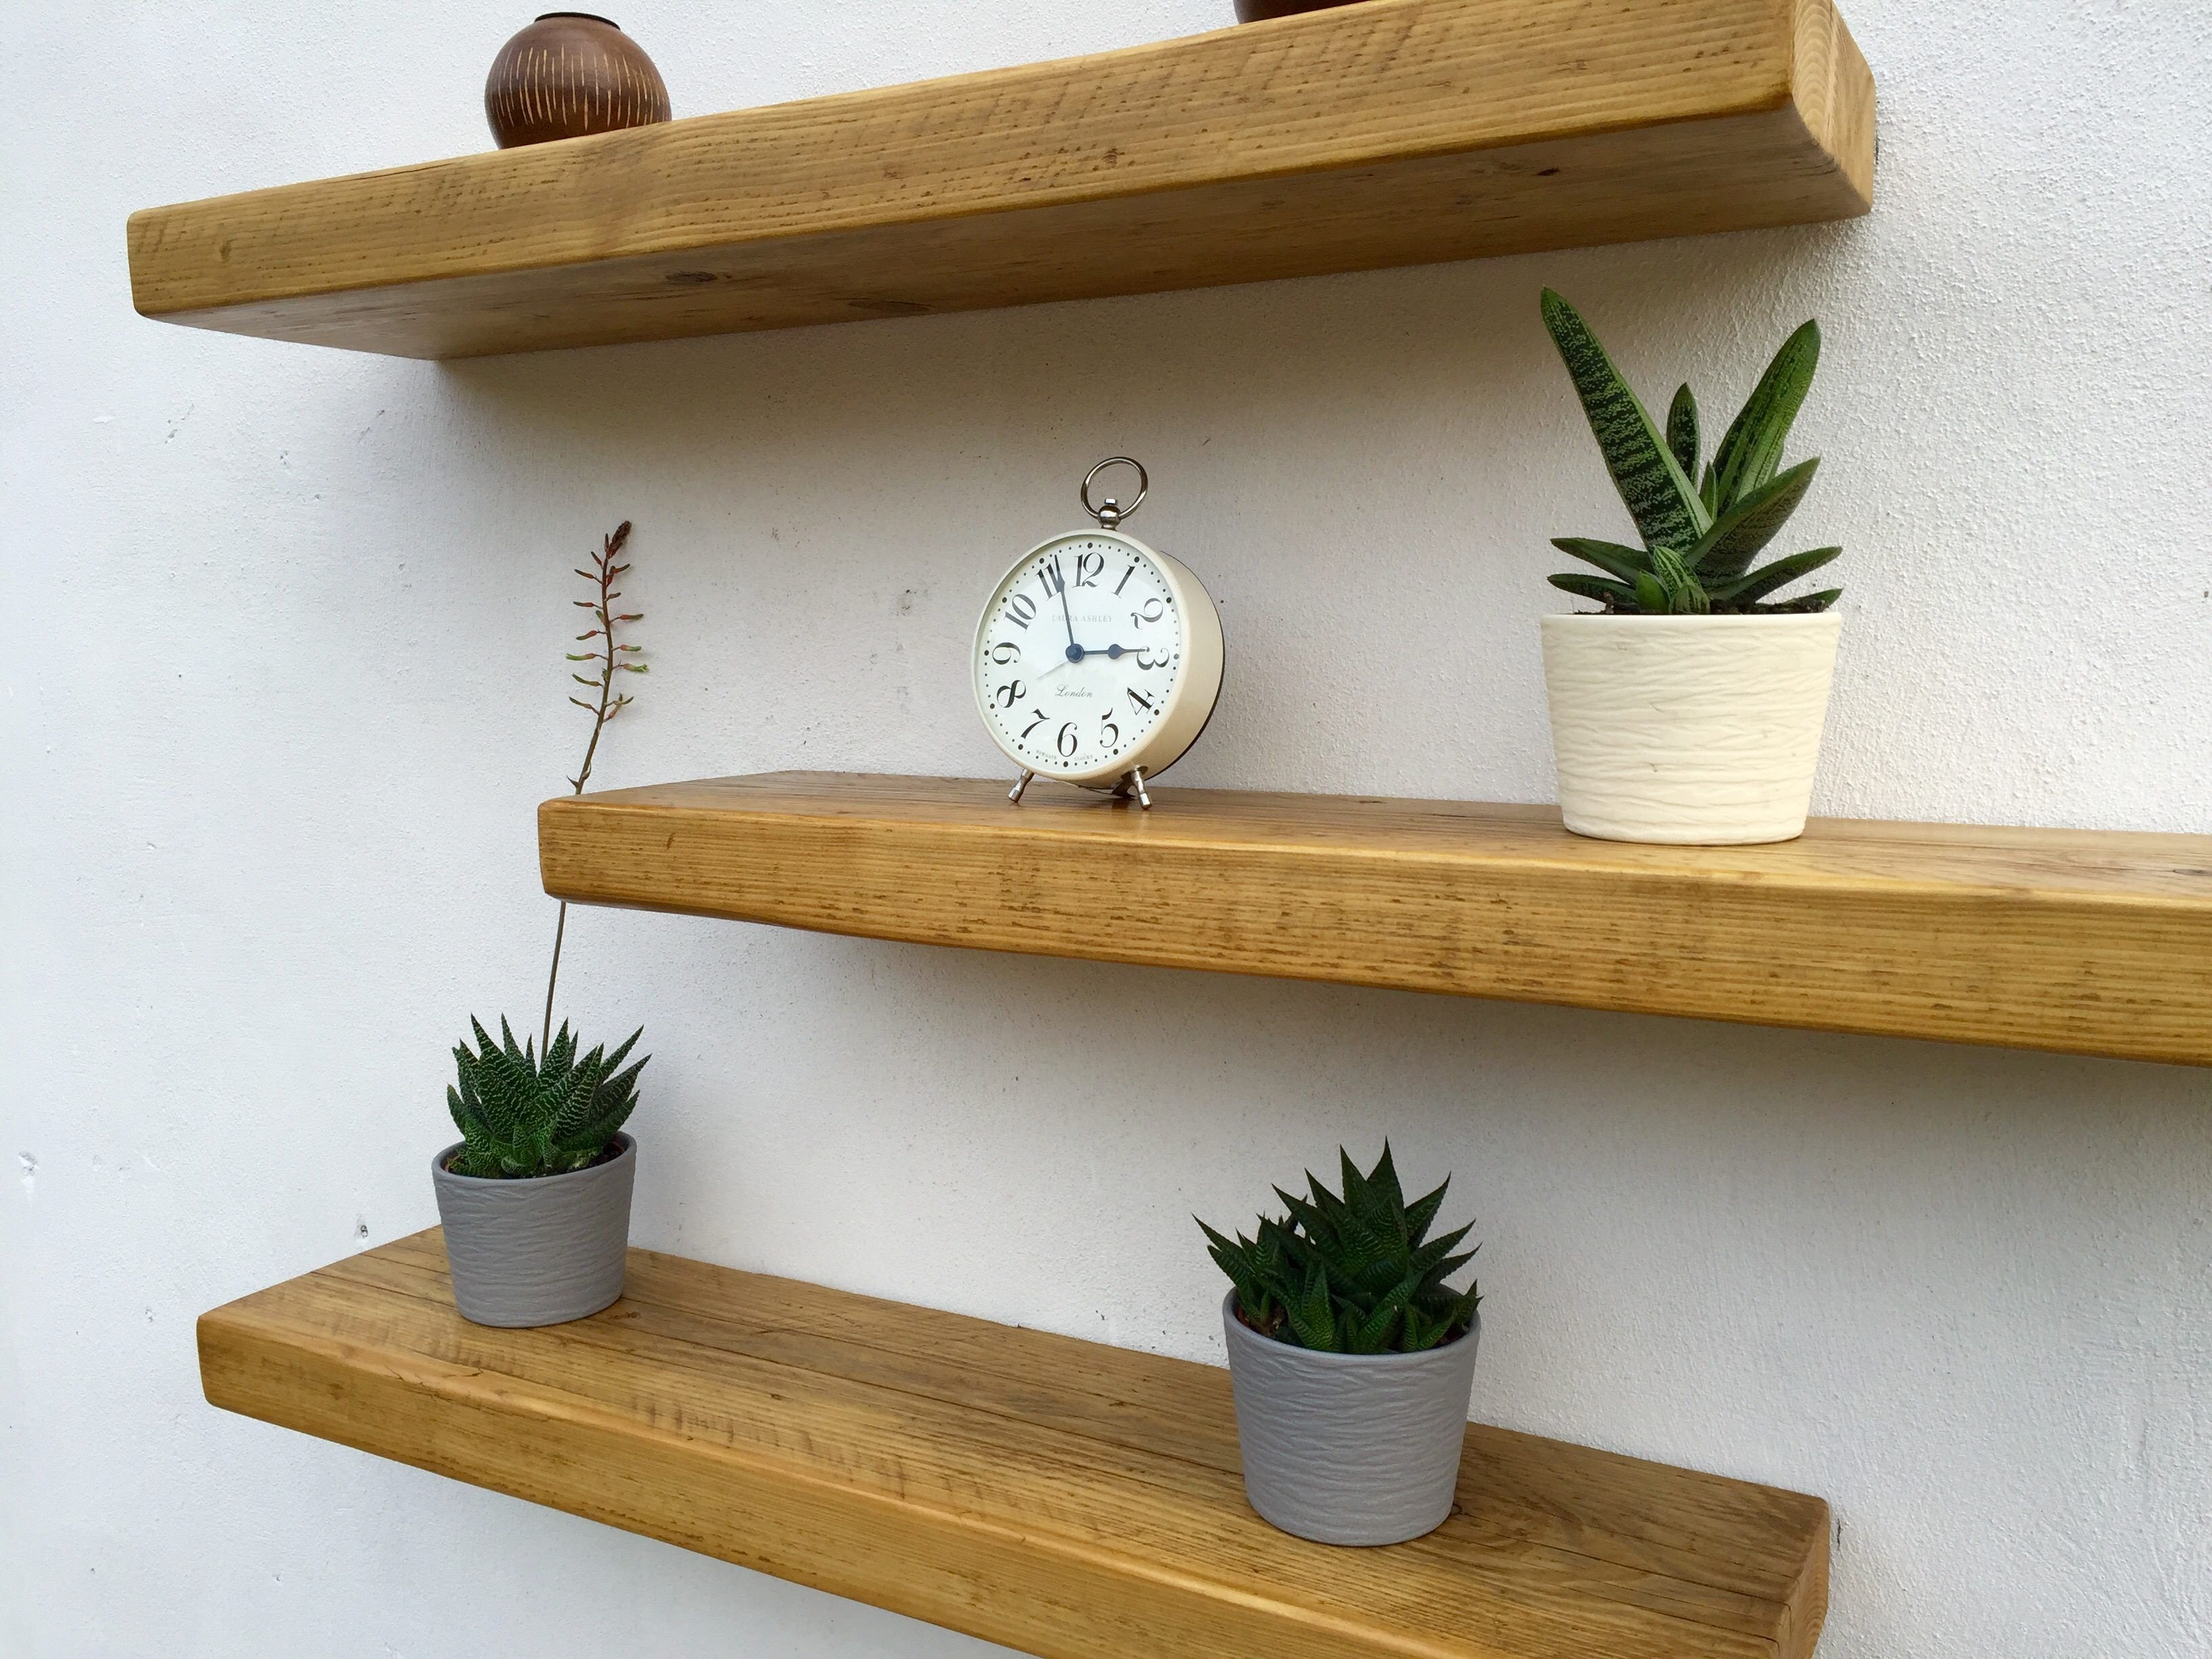 Shelves of plasterboard in the bathroom, on the wall, under the TV (photo). How to make a shelf of plasterboard do it yourself Corner shelves of plasterboard 1